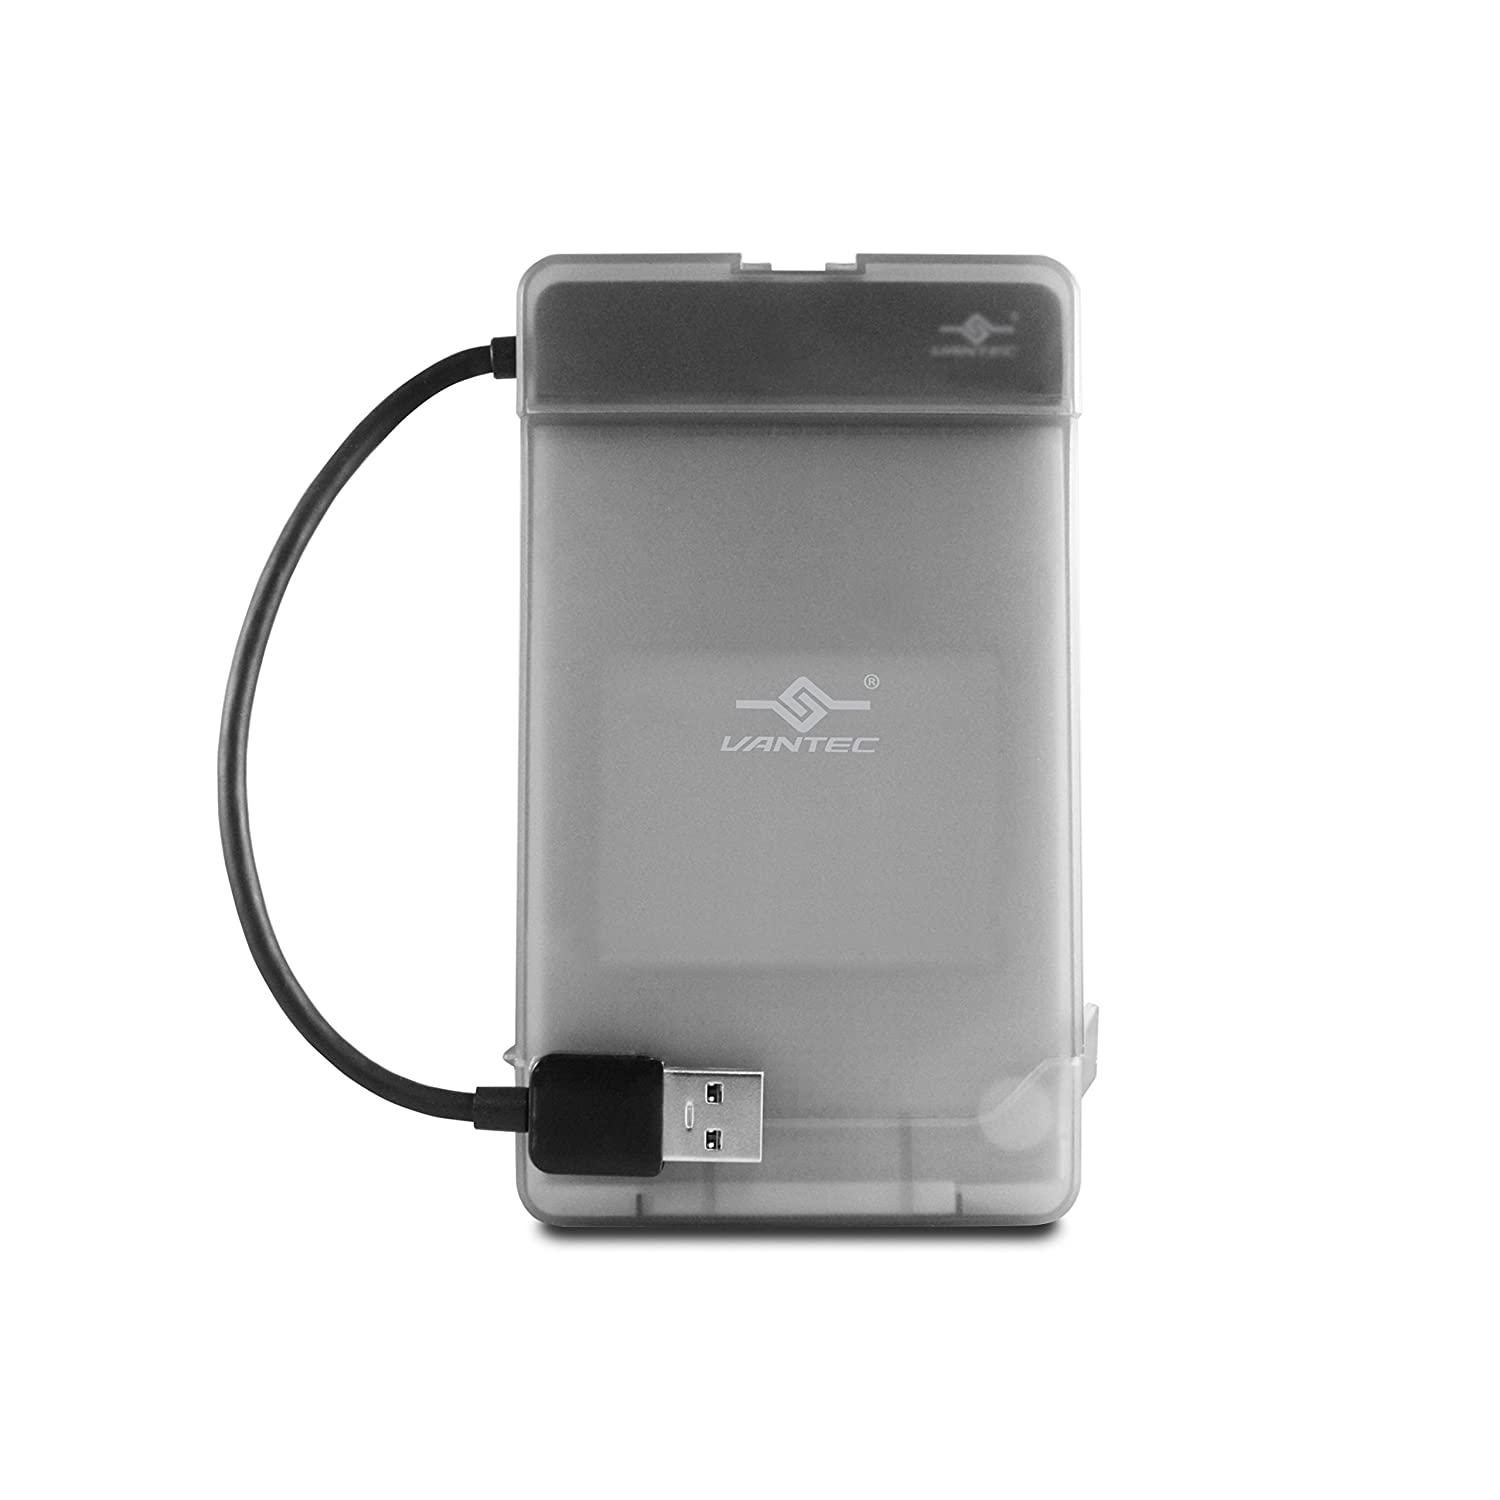 Vantec CB-STU3-2PB USB 3.0 to 2.5 inch SATA Hard Drive Adapter w/ Case